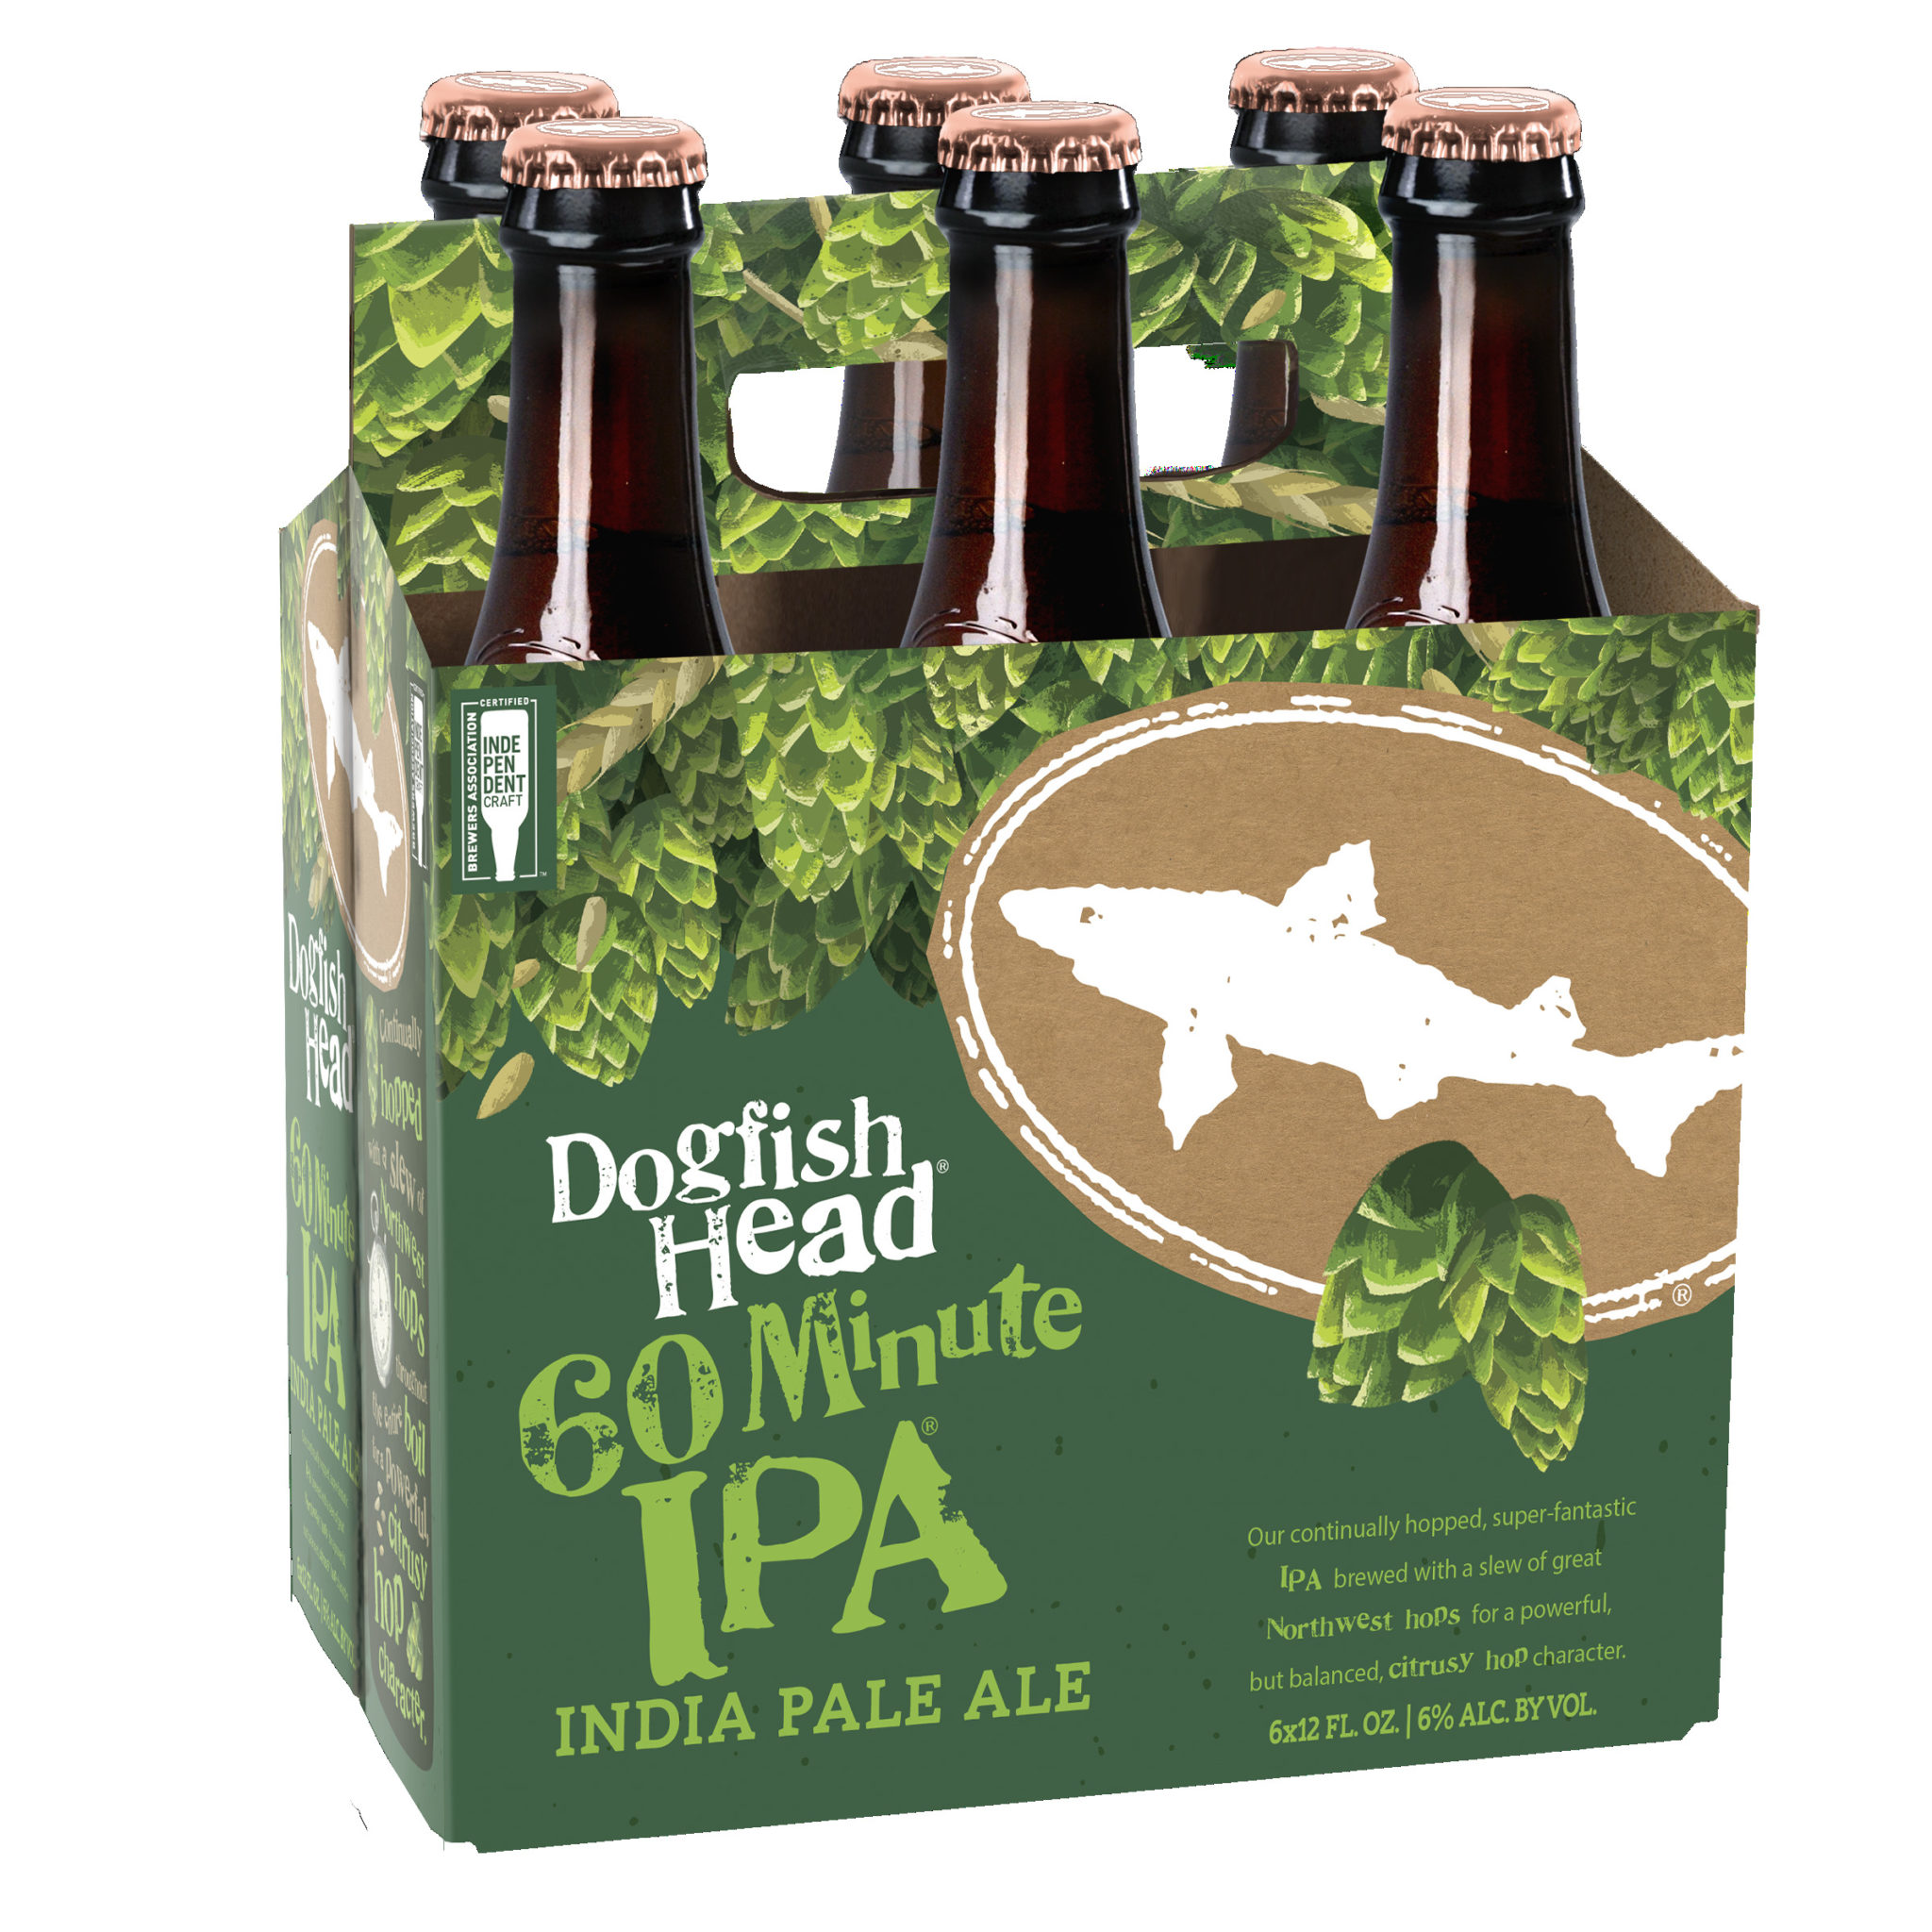 DOGFISH HEAD CORE - Bond Distributing Company